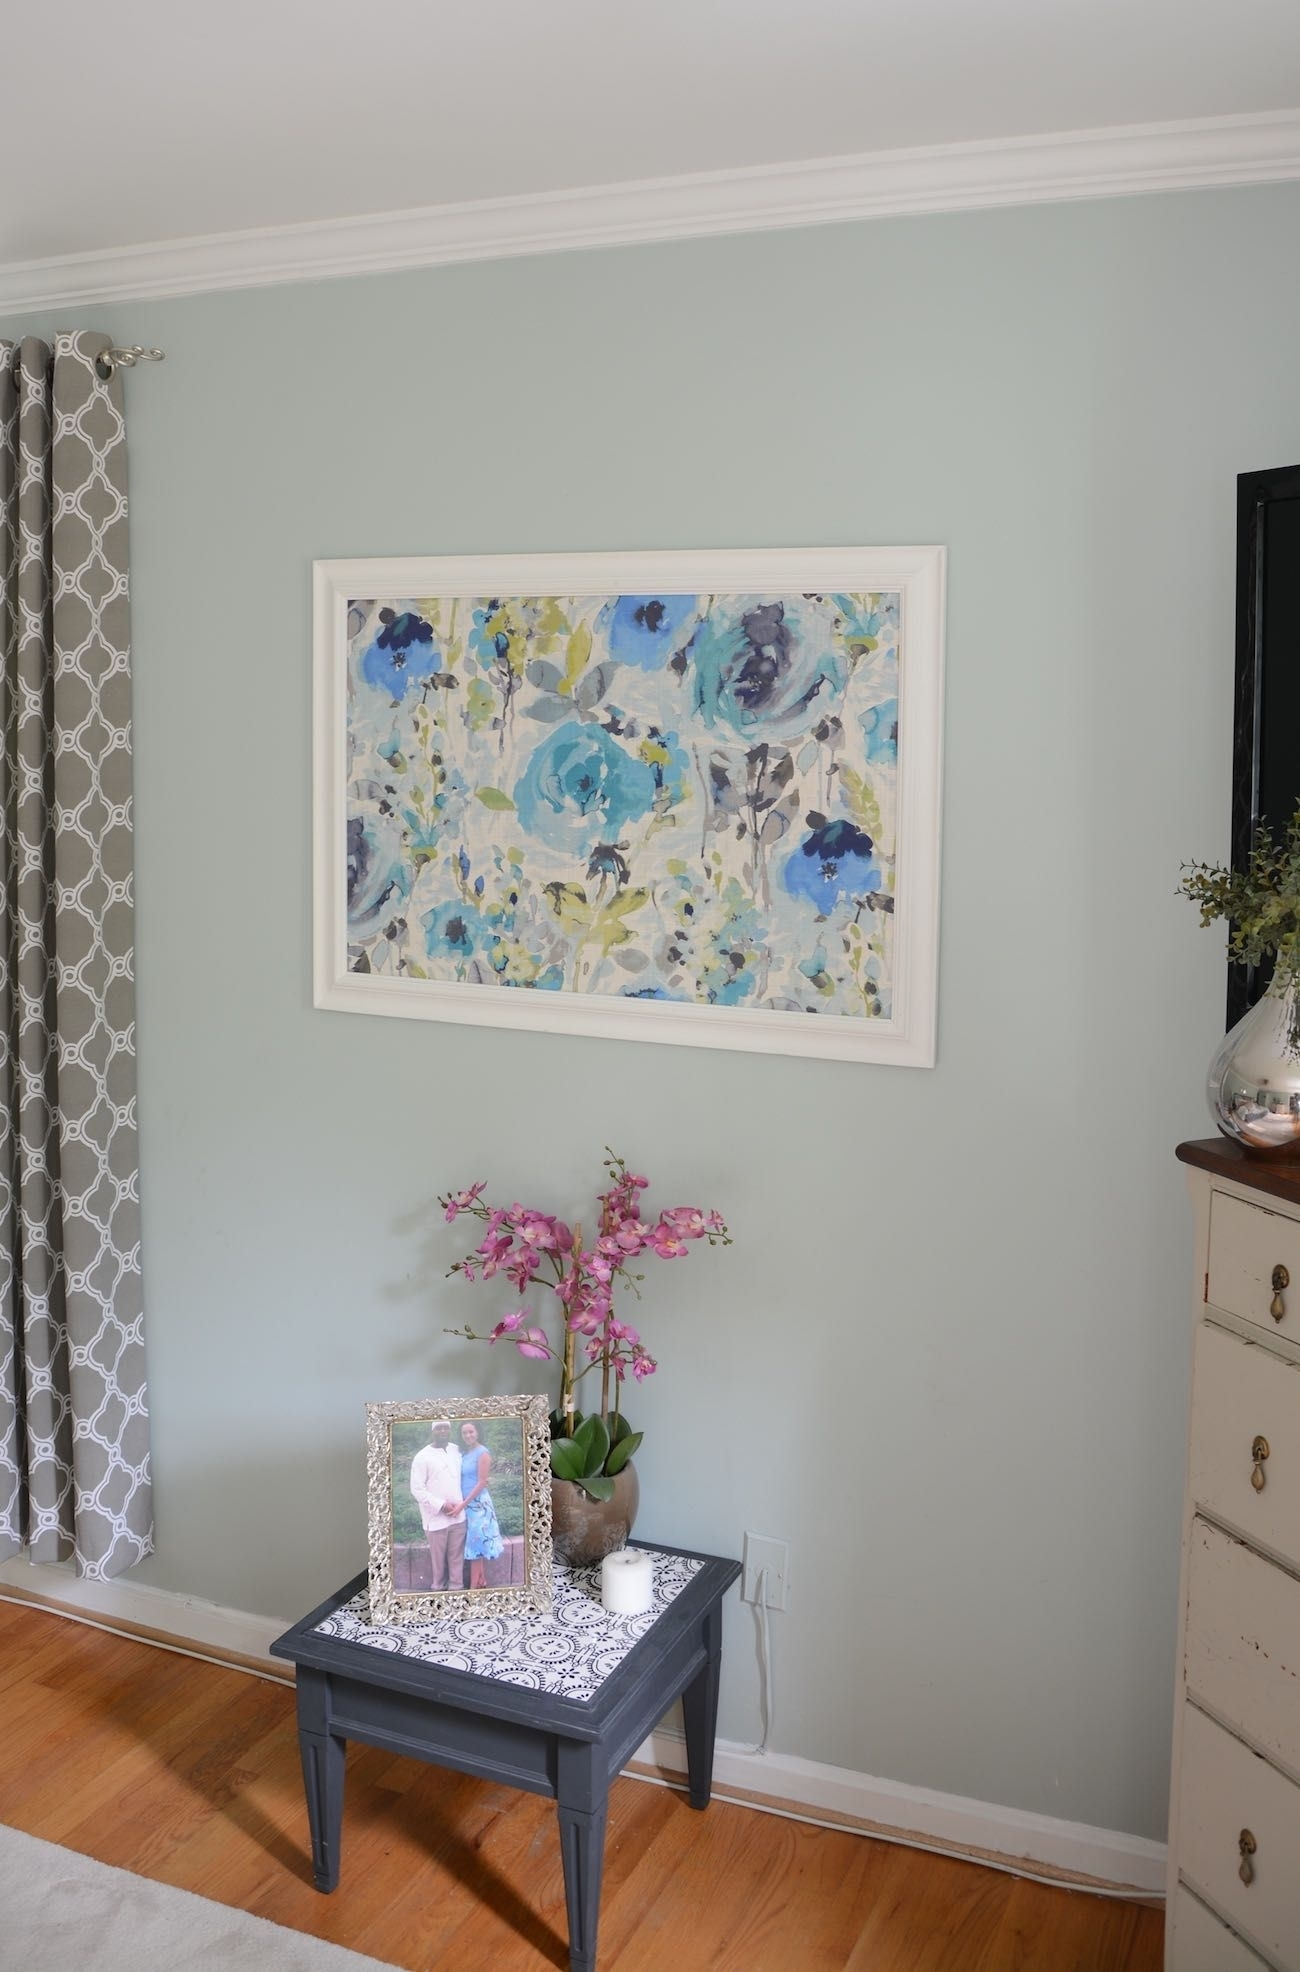 How To Frame Fabric For Wall Art With A Picture Frame | Inexpensive Regarding 2018 Inexpensive Wall Art (View 8 of 20)